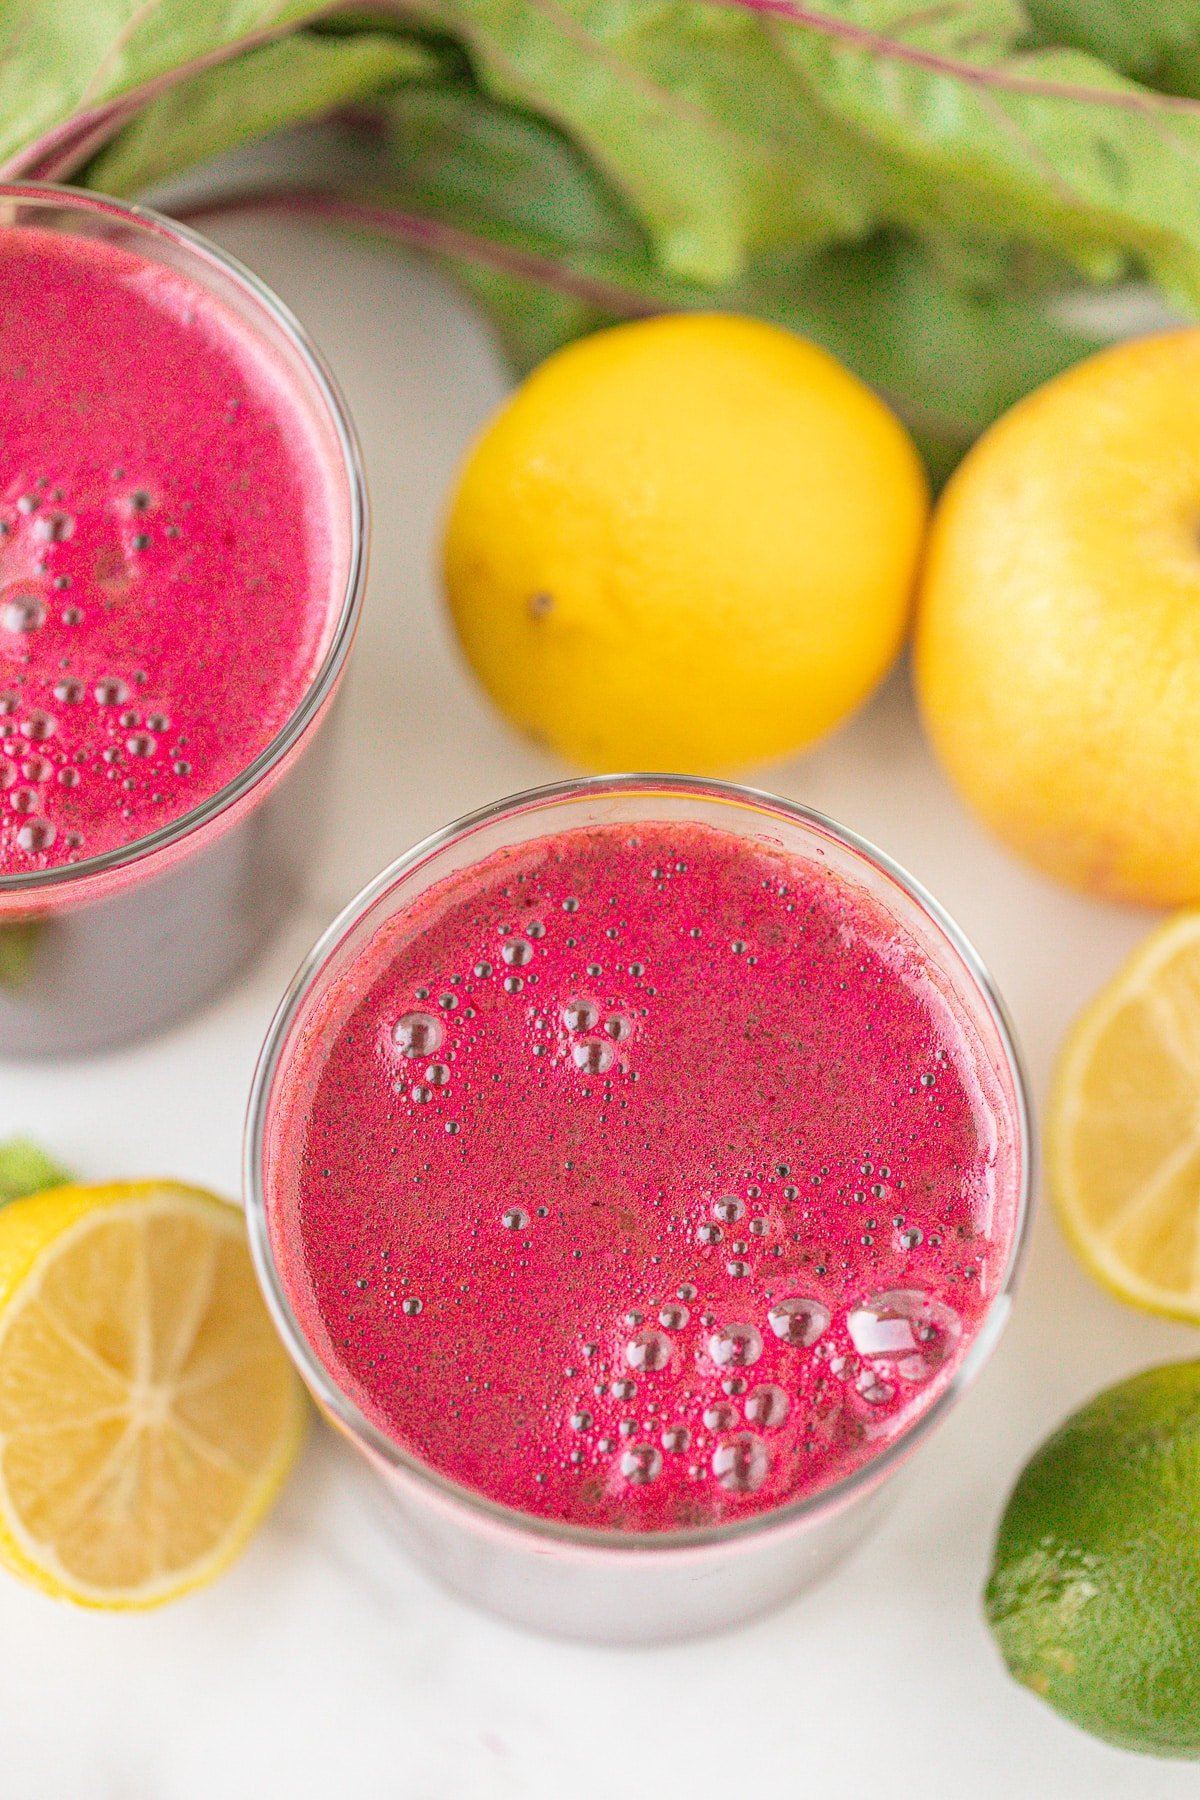 two glasses of fresh beetroot juice on a countertop with fresh lemons